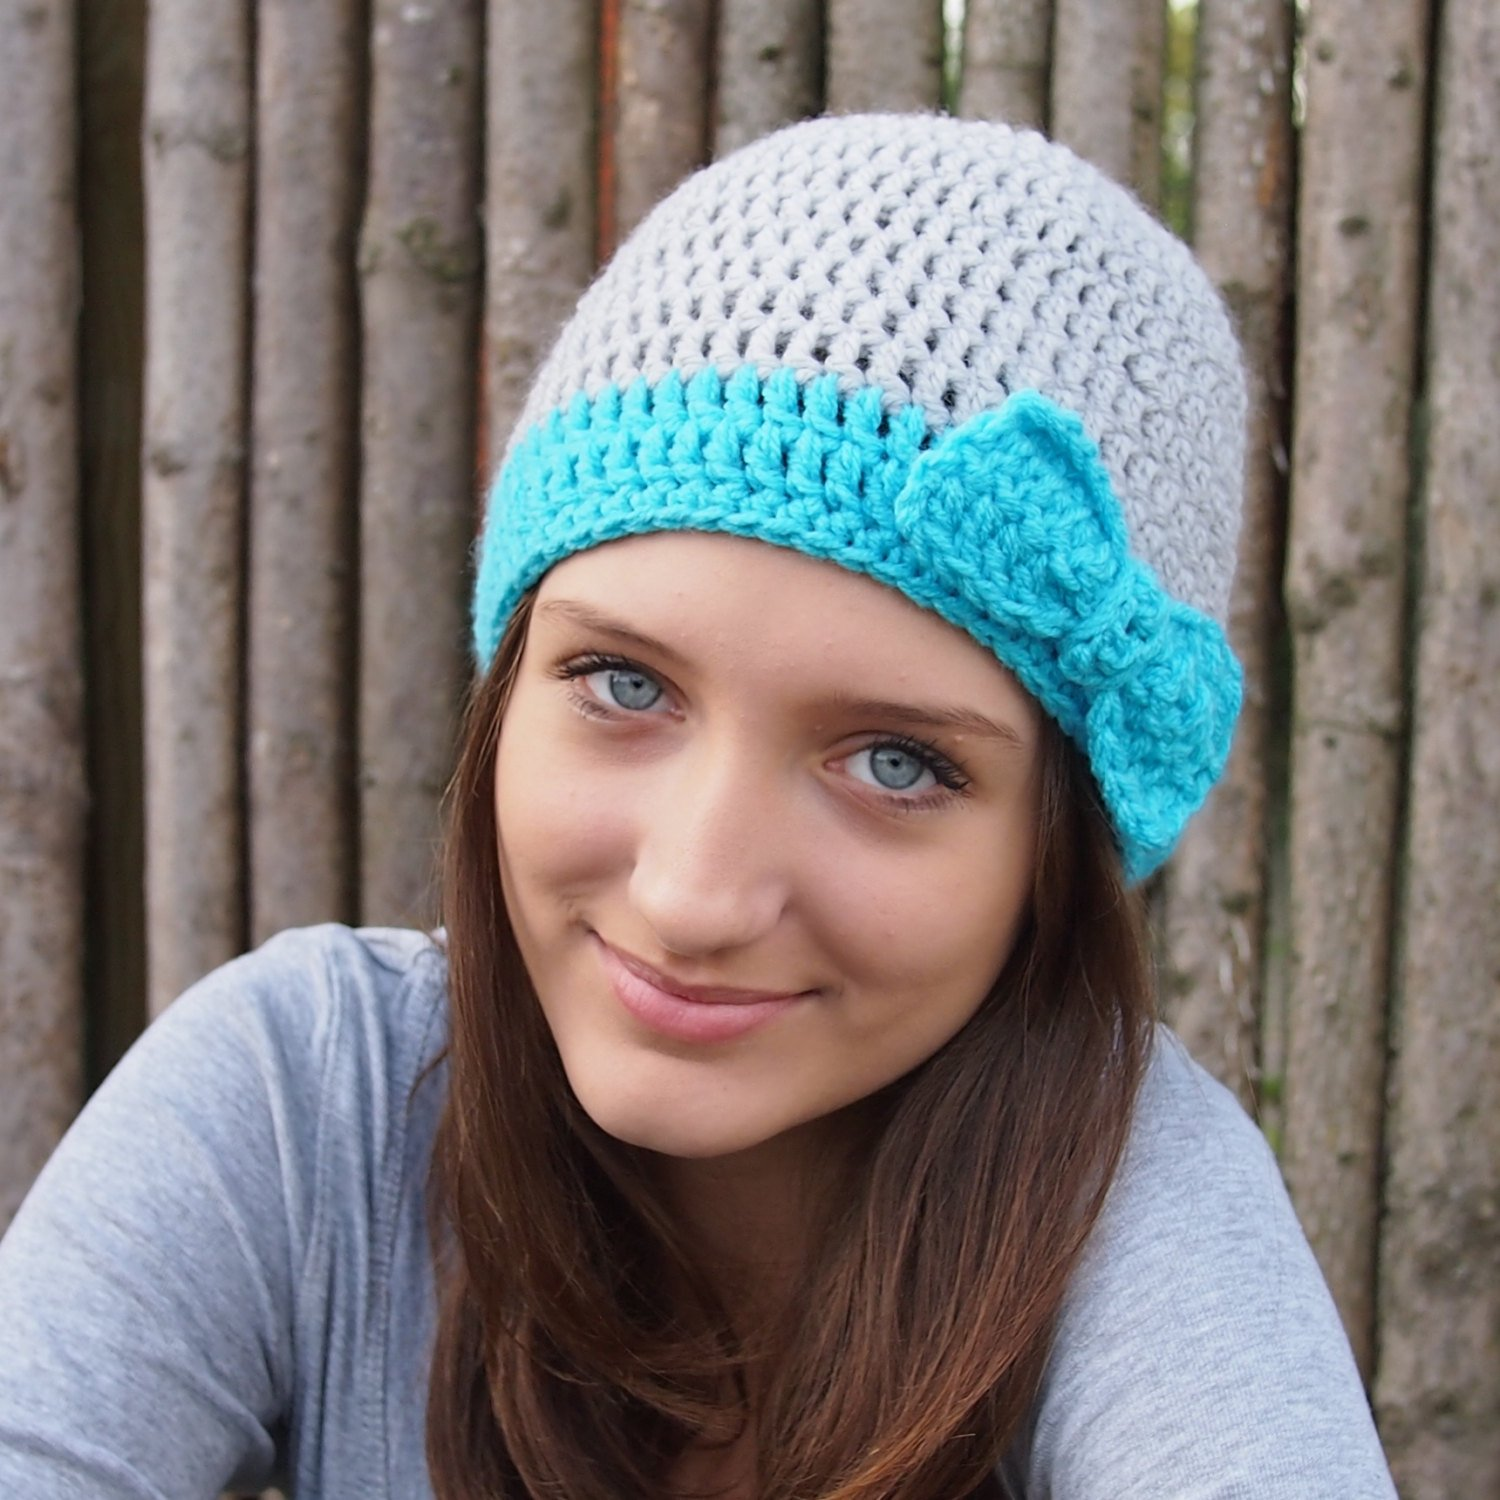 Free Crochet Hat Pattern With Bow : 25 Easy Crochet Bow Patterns Guide Patterns